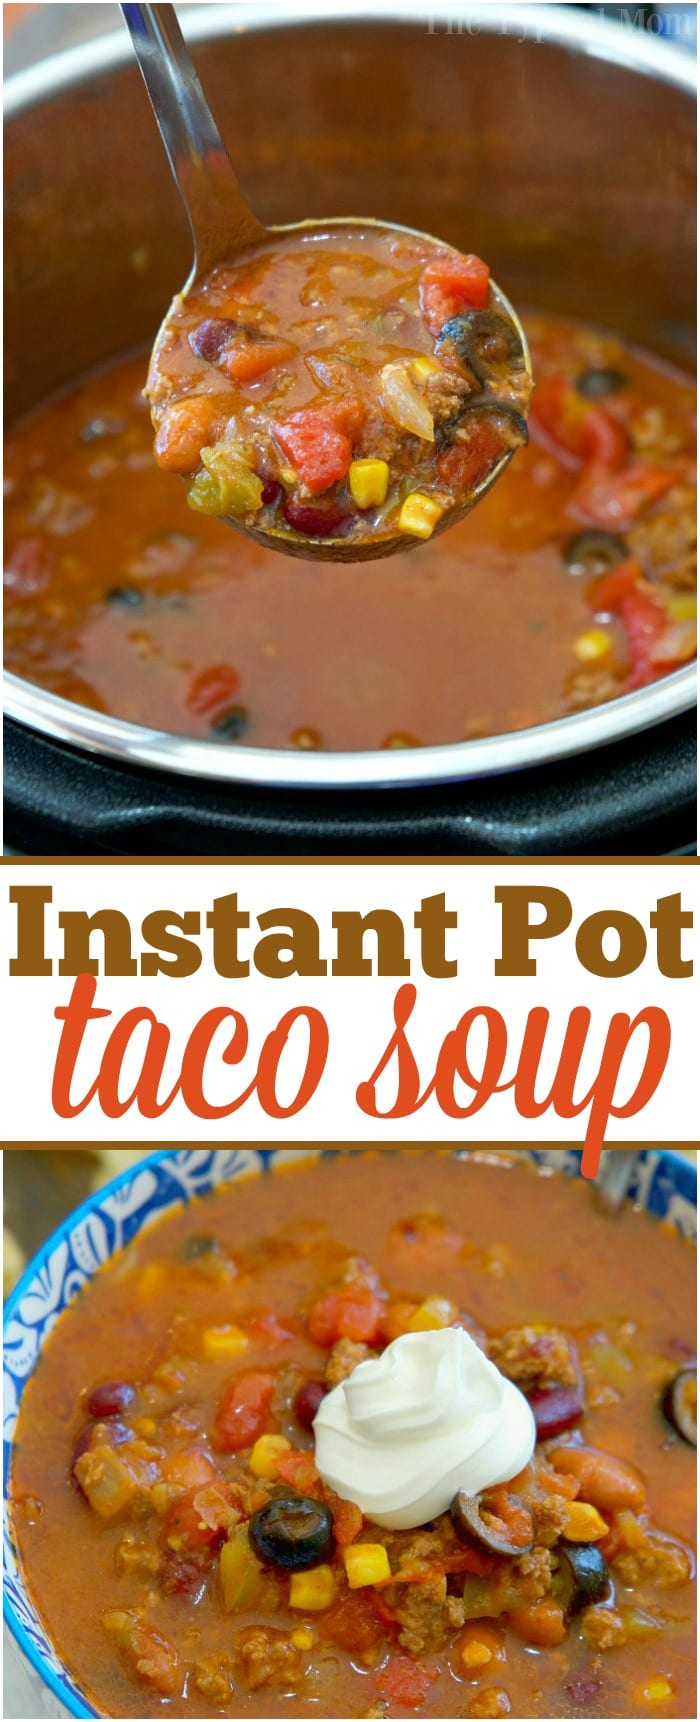 This easy Instant Pot taco soup recipe is perfect year round and packed with flavor. Just 6 minutes in your pressure cooker topped with sour cream and a side of chips or a roll and it's the perfect family meal! Need a warm soup during the Winter or just love anything tacos, give this a whirl. #instantpot #pressurecooker #taco #soup #bean #easy #recipe